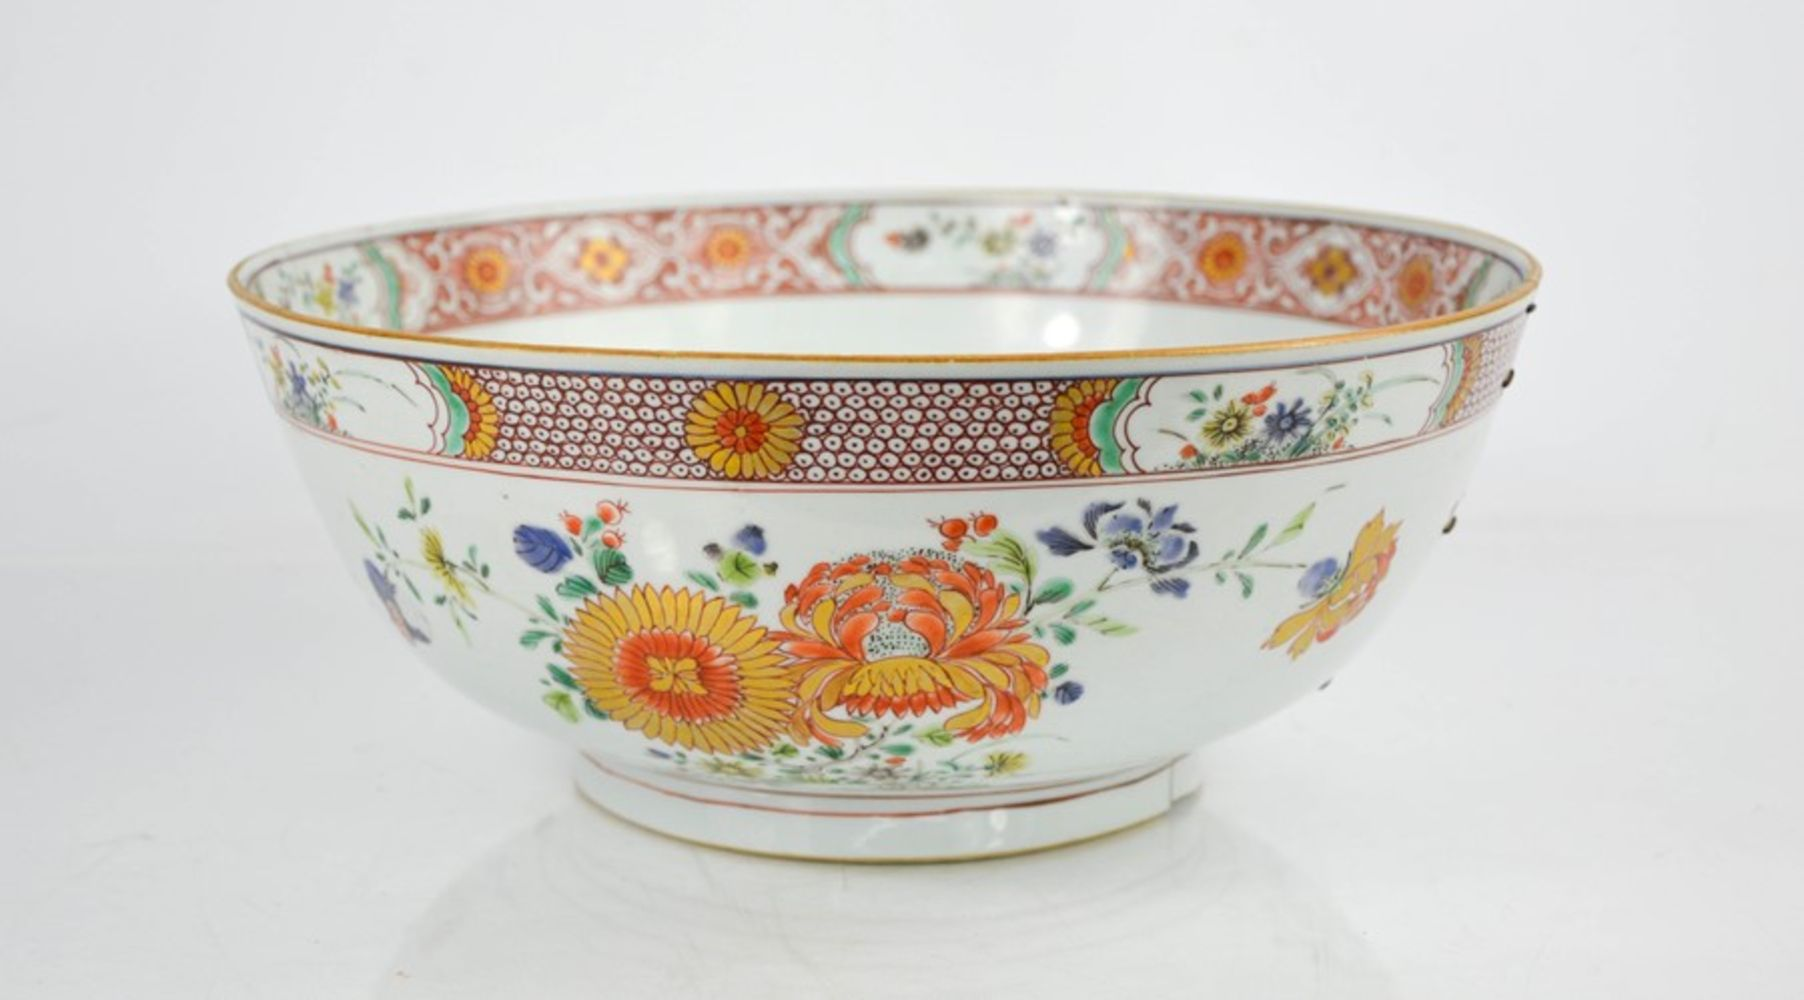 Pictures, Oriental Art, Antiques & Collectables - Online Only